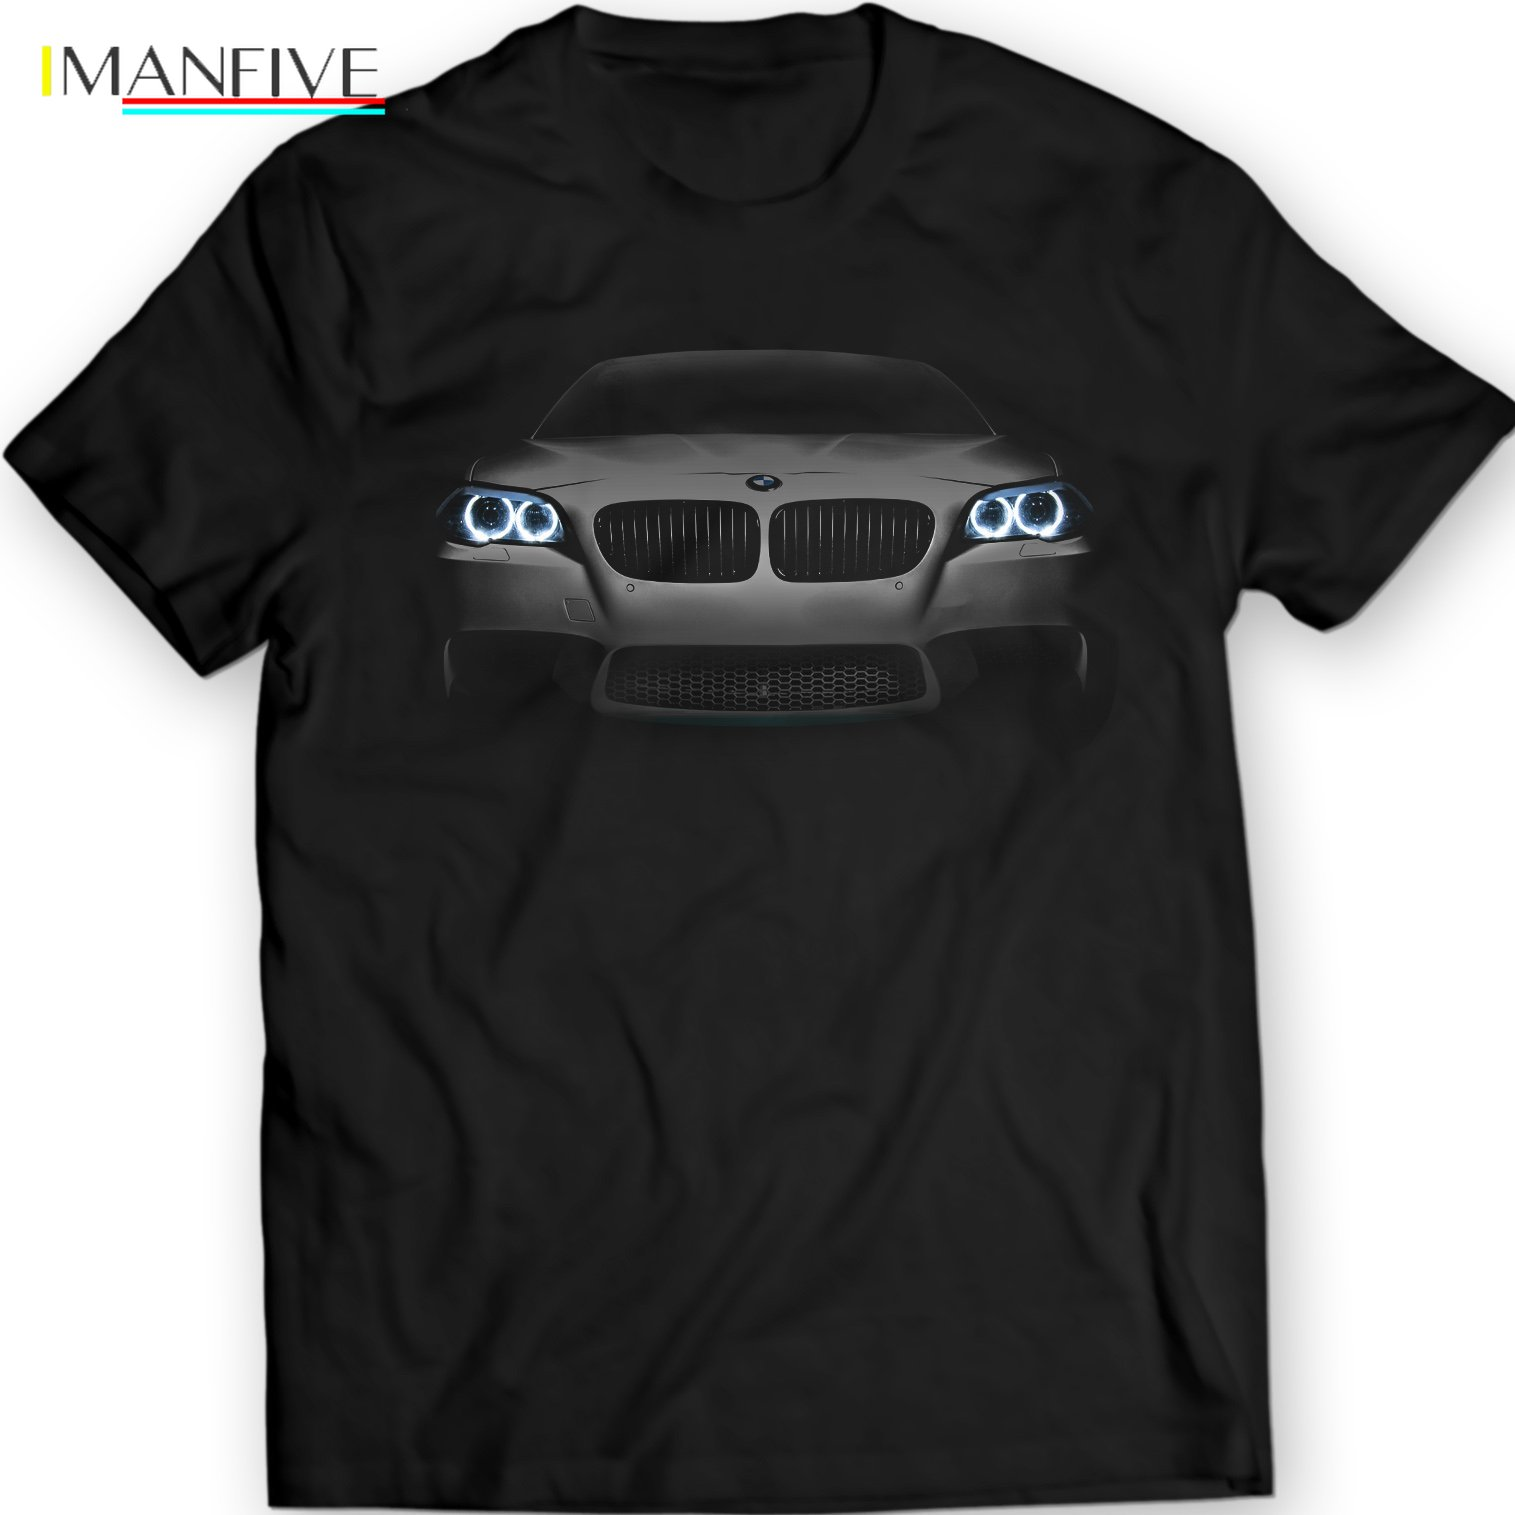 2019 New Cool Tee Shirt Germany Car M5 F10 Black T Shirt Bimmer 5er Angel Eyes power Holiday Gift Birthday T shirt in T Shirts from Men 39 s Clothing